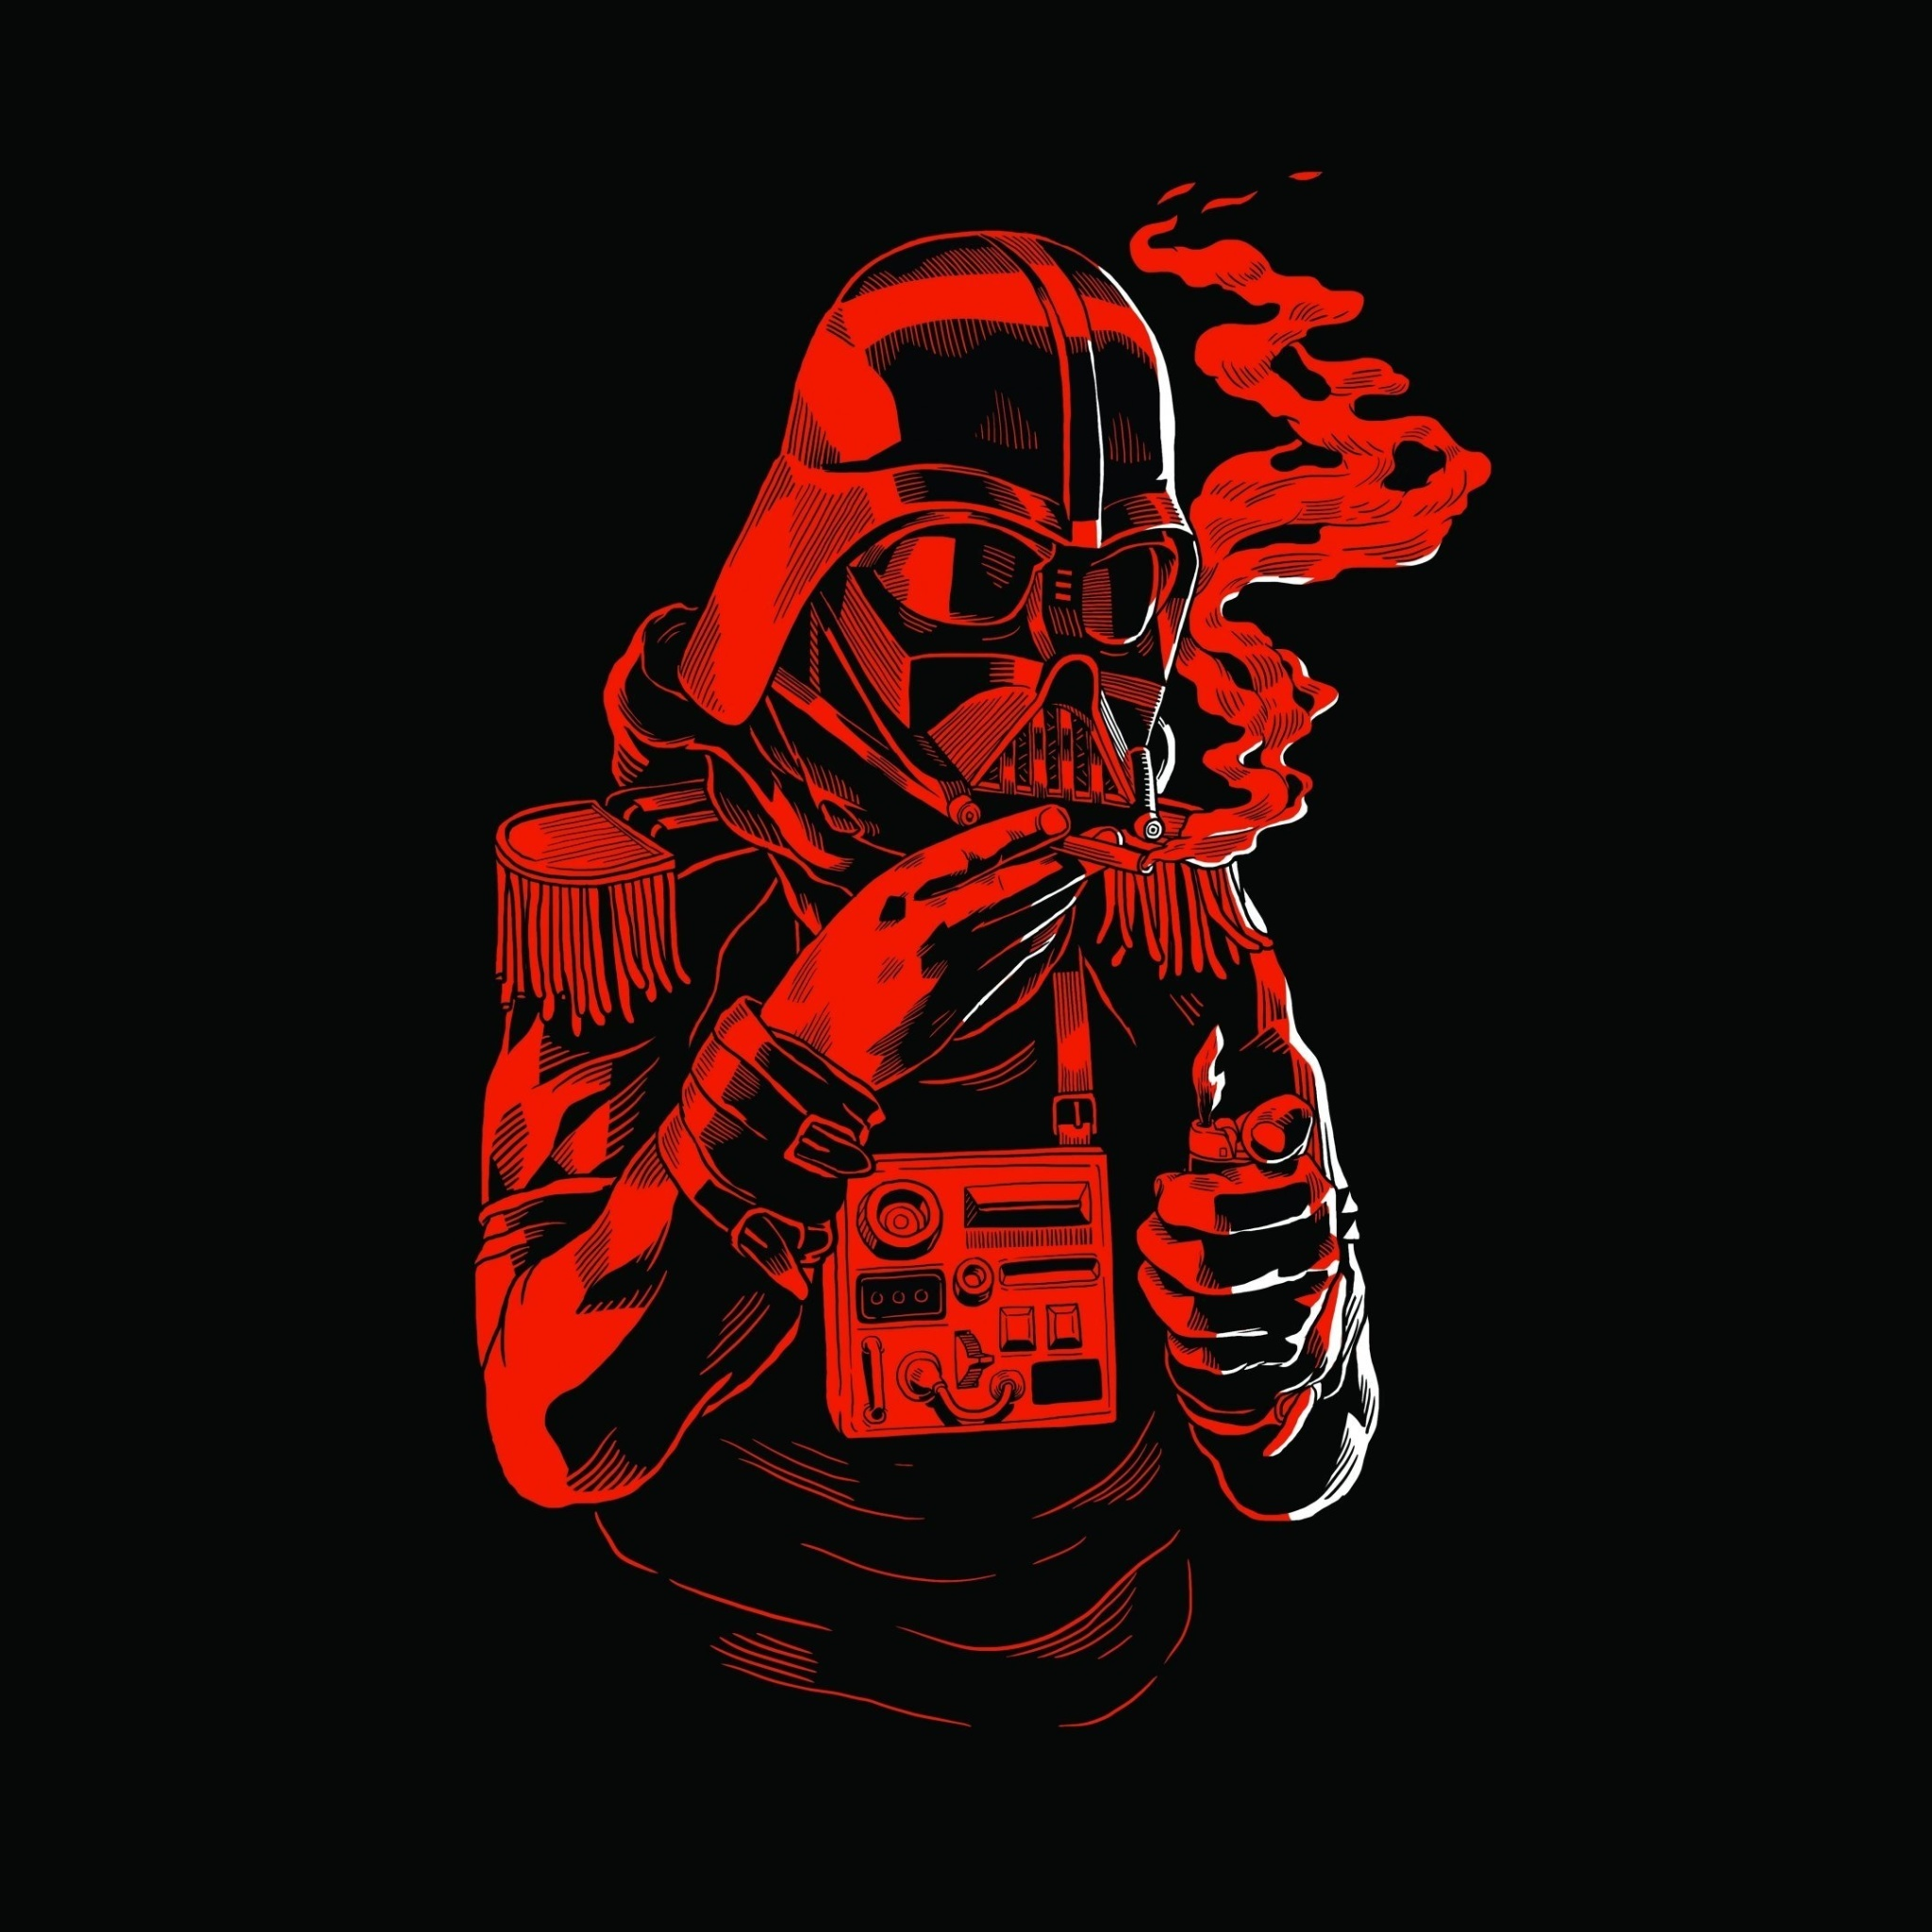 Das Star Wars Smoking Wallpaper 2048x2048